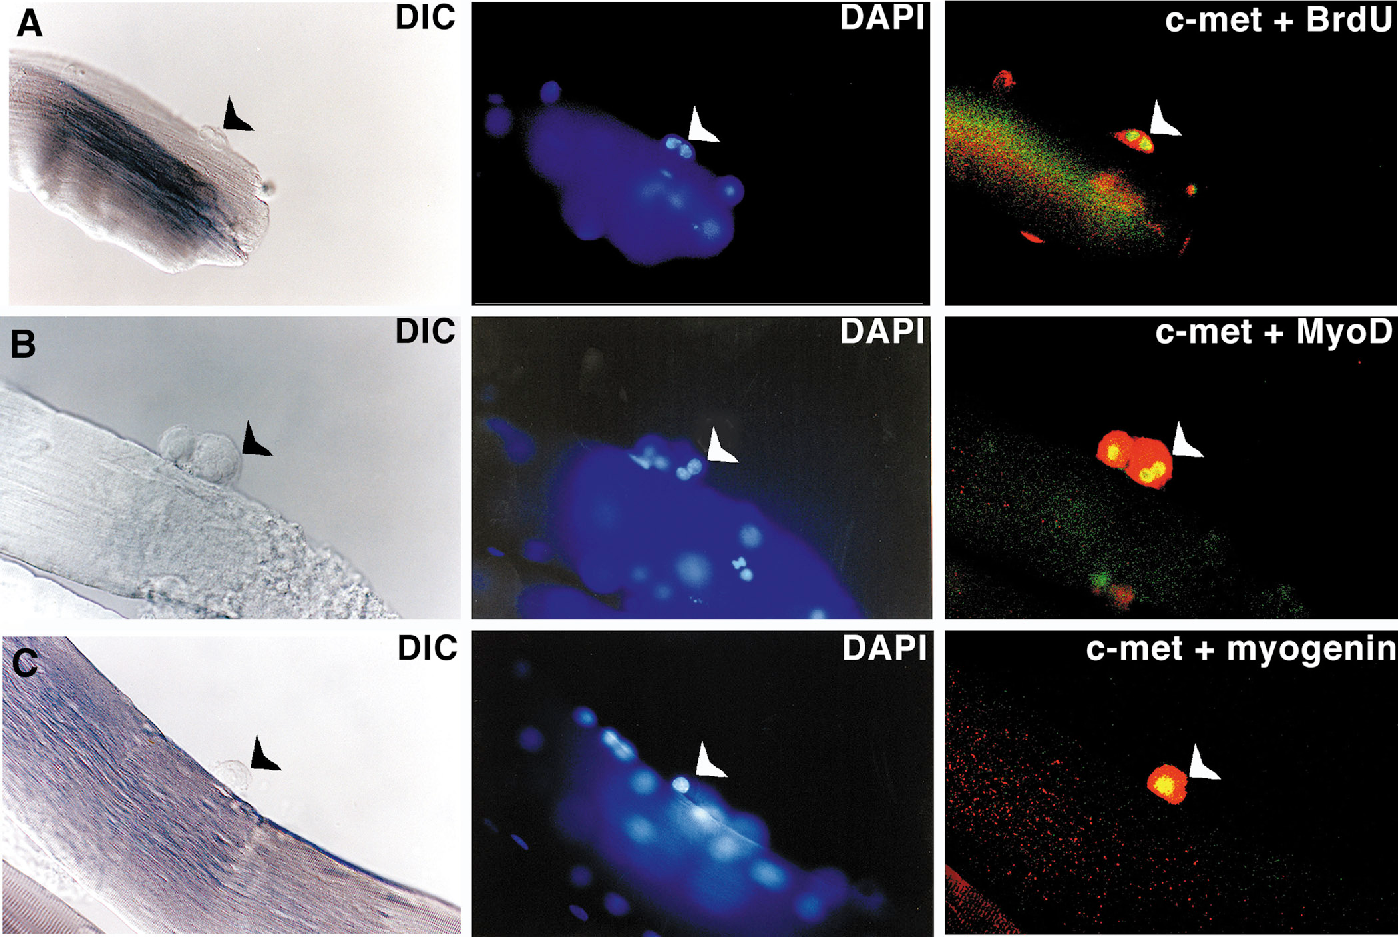 FIG. 4. (A) Myofiber stained and photographed after 48 hr in culture shown in phase and with nuclei visualized with DAPI; composite confocal image showing BrdU incorporation in nuclei of c-met-positive cells (4001). (B) Myofiber stained and photographed after 96 hr in culture shown in phase and with nuclei visualized with DAPI; composite confocal image showing expression of MyoD in nuclei of cmet-positive cells (4001). (C) Myofiber stained and photographed after 96 hr in culture shown in phase and with nuclei visualized with DAPI; composite confocal image showing expression of myogenin in the nucleus of a c-met-positive cell (4001).